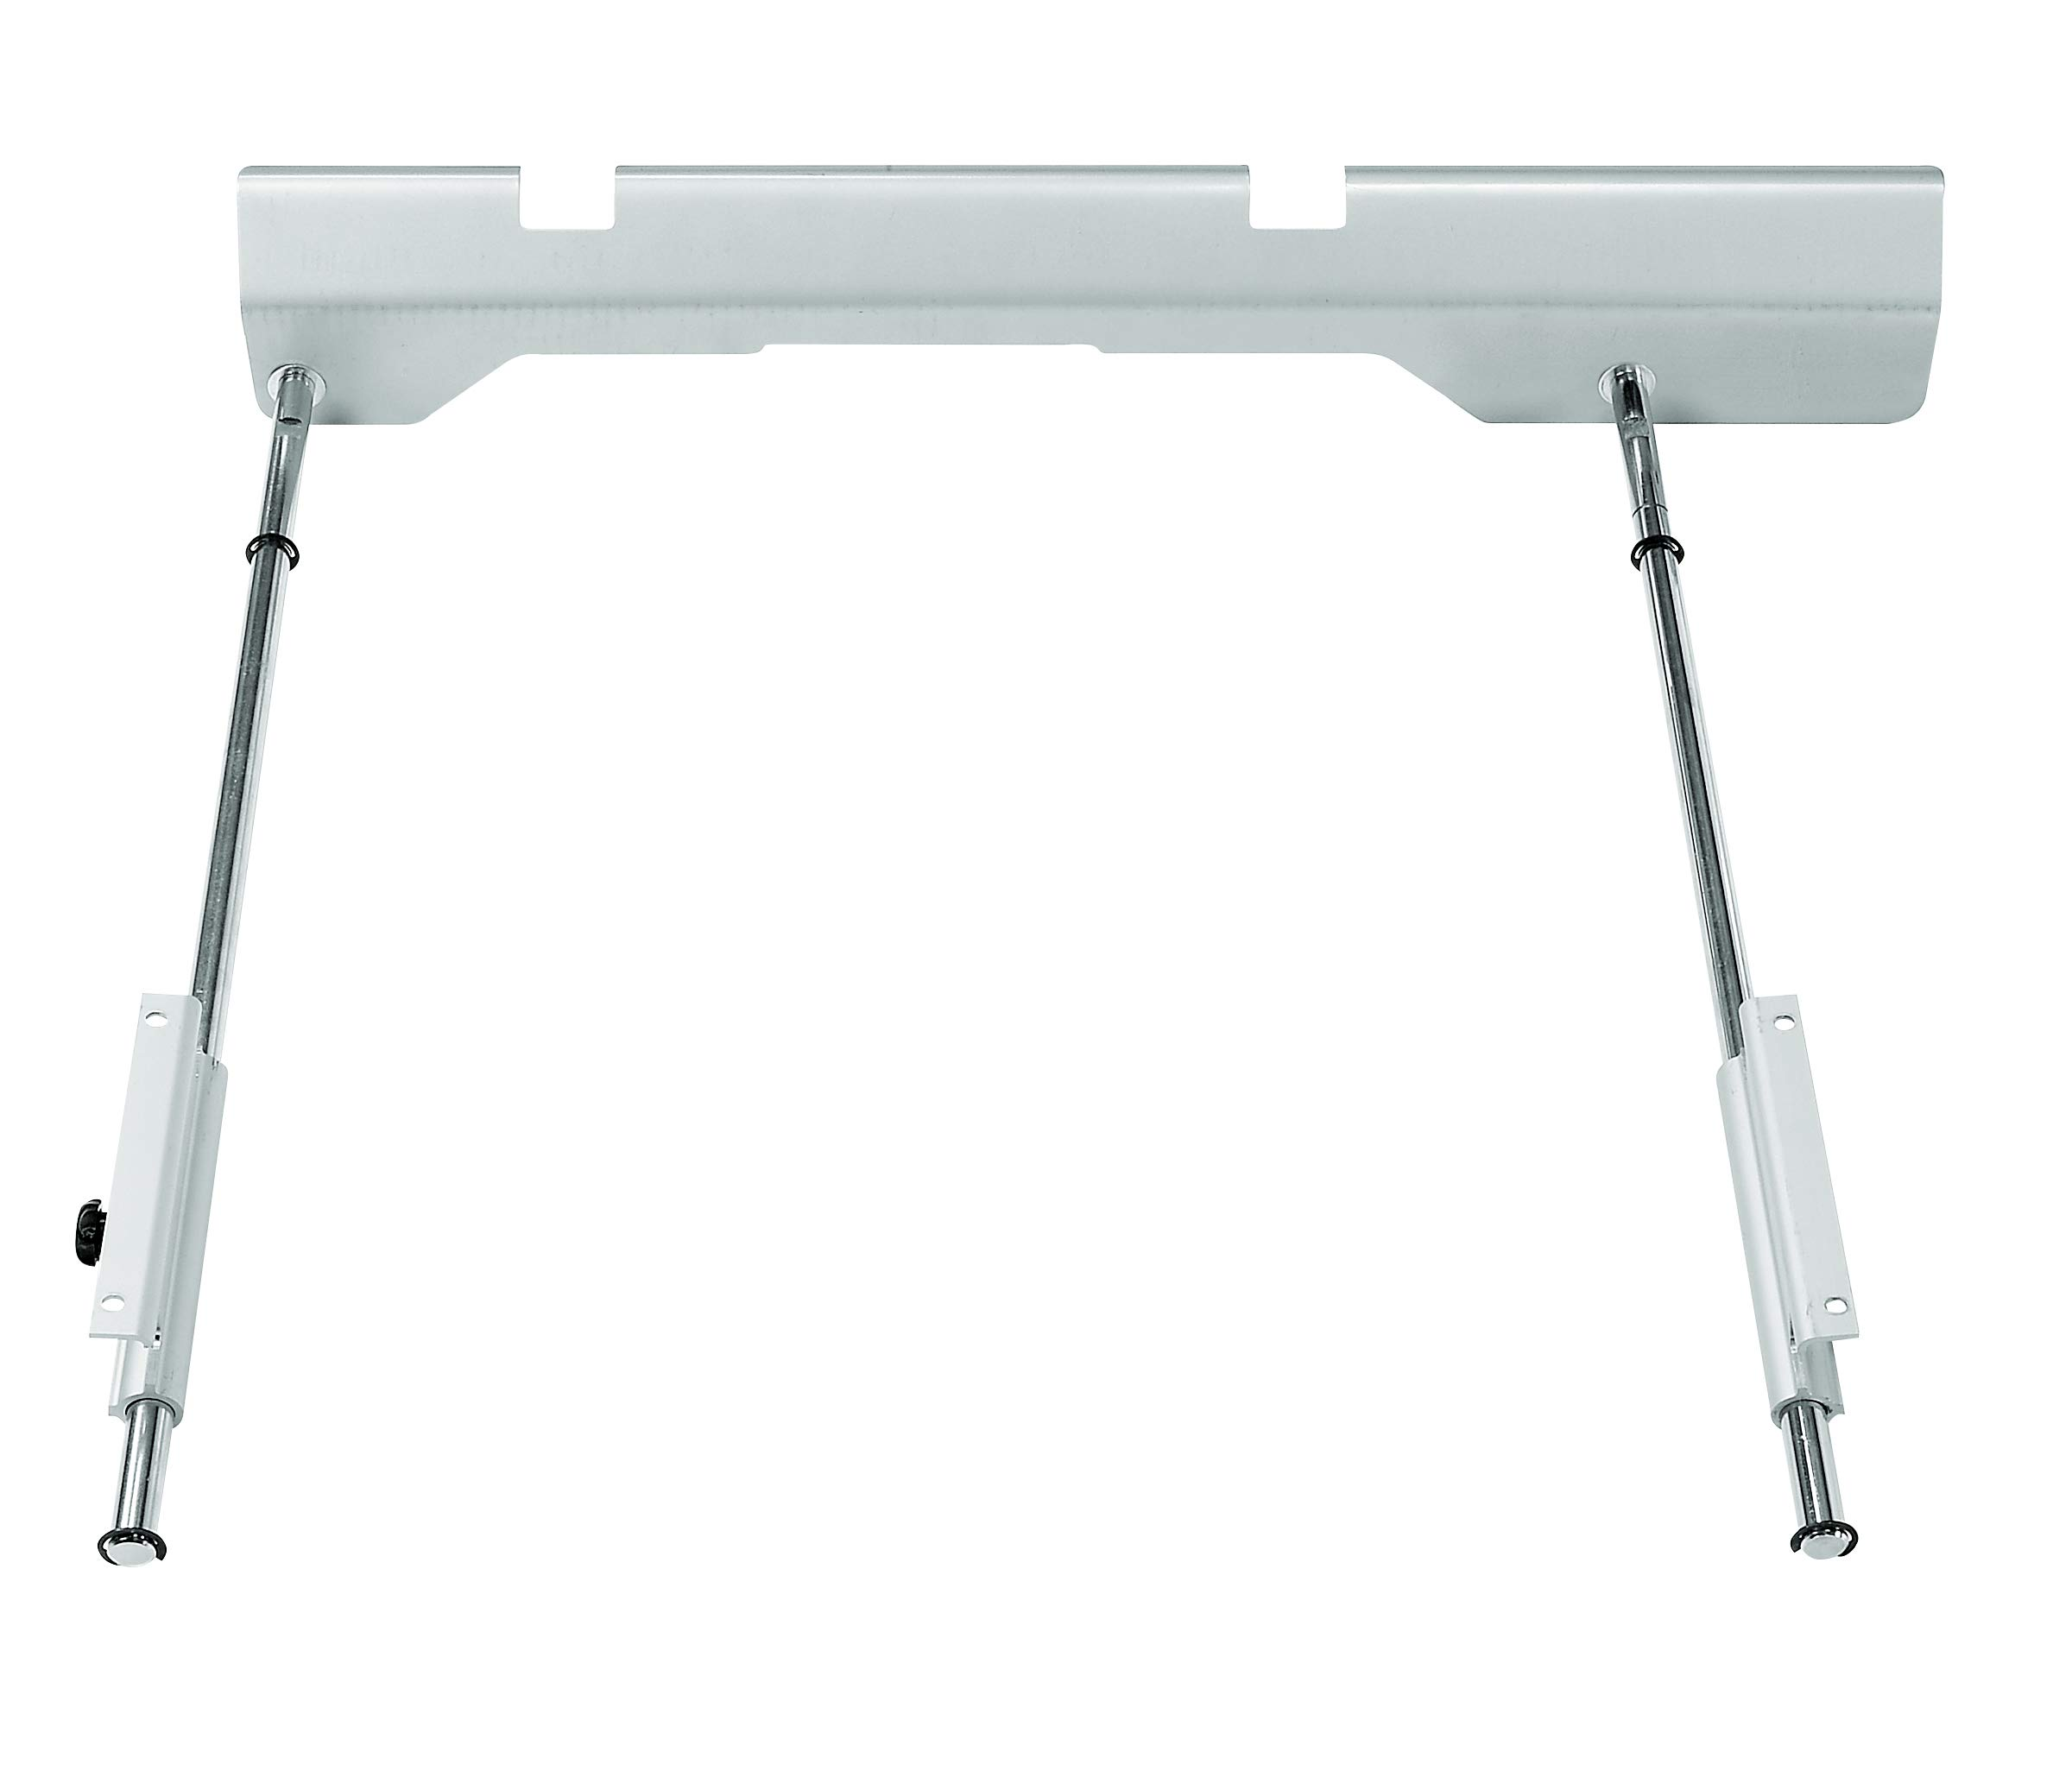 Bosch TS1016 Outfeed Support Assembly